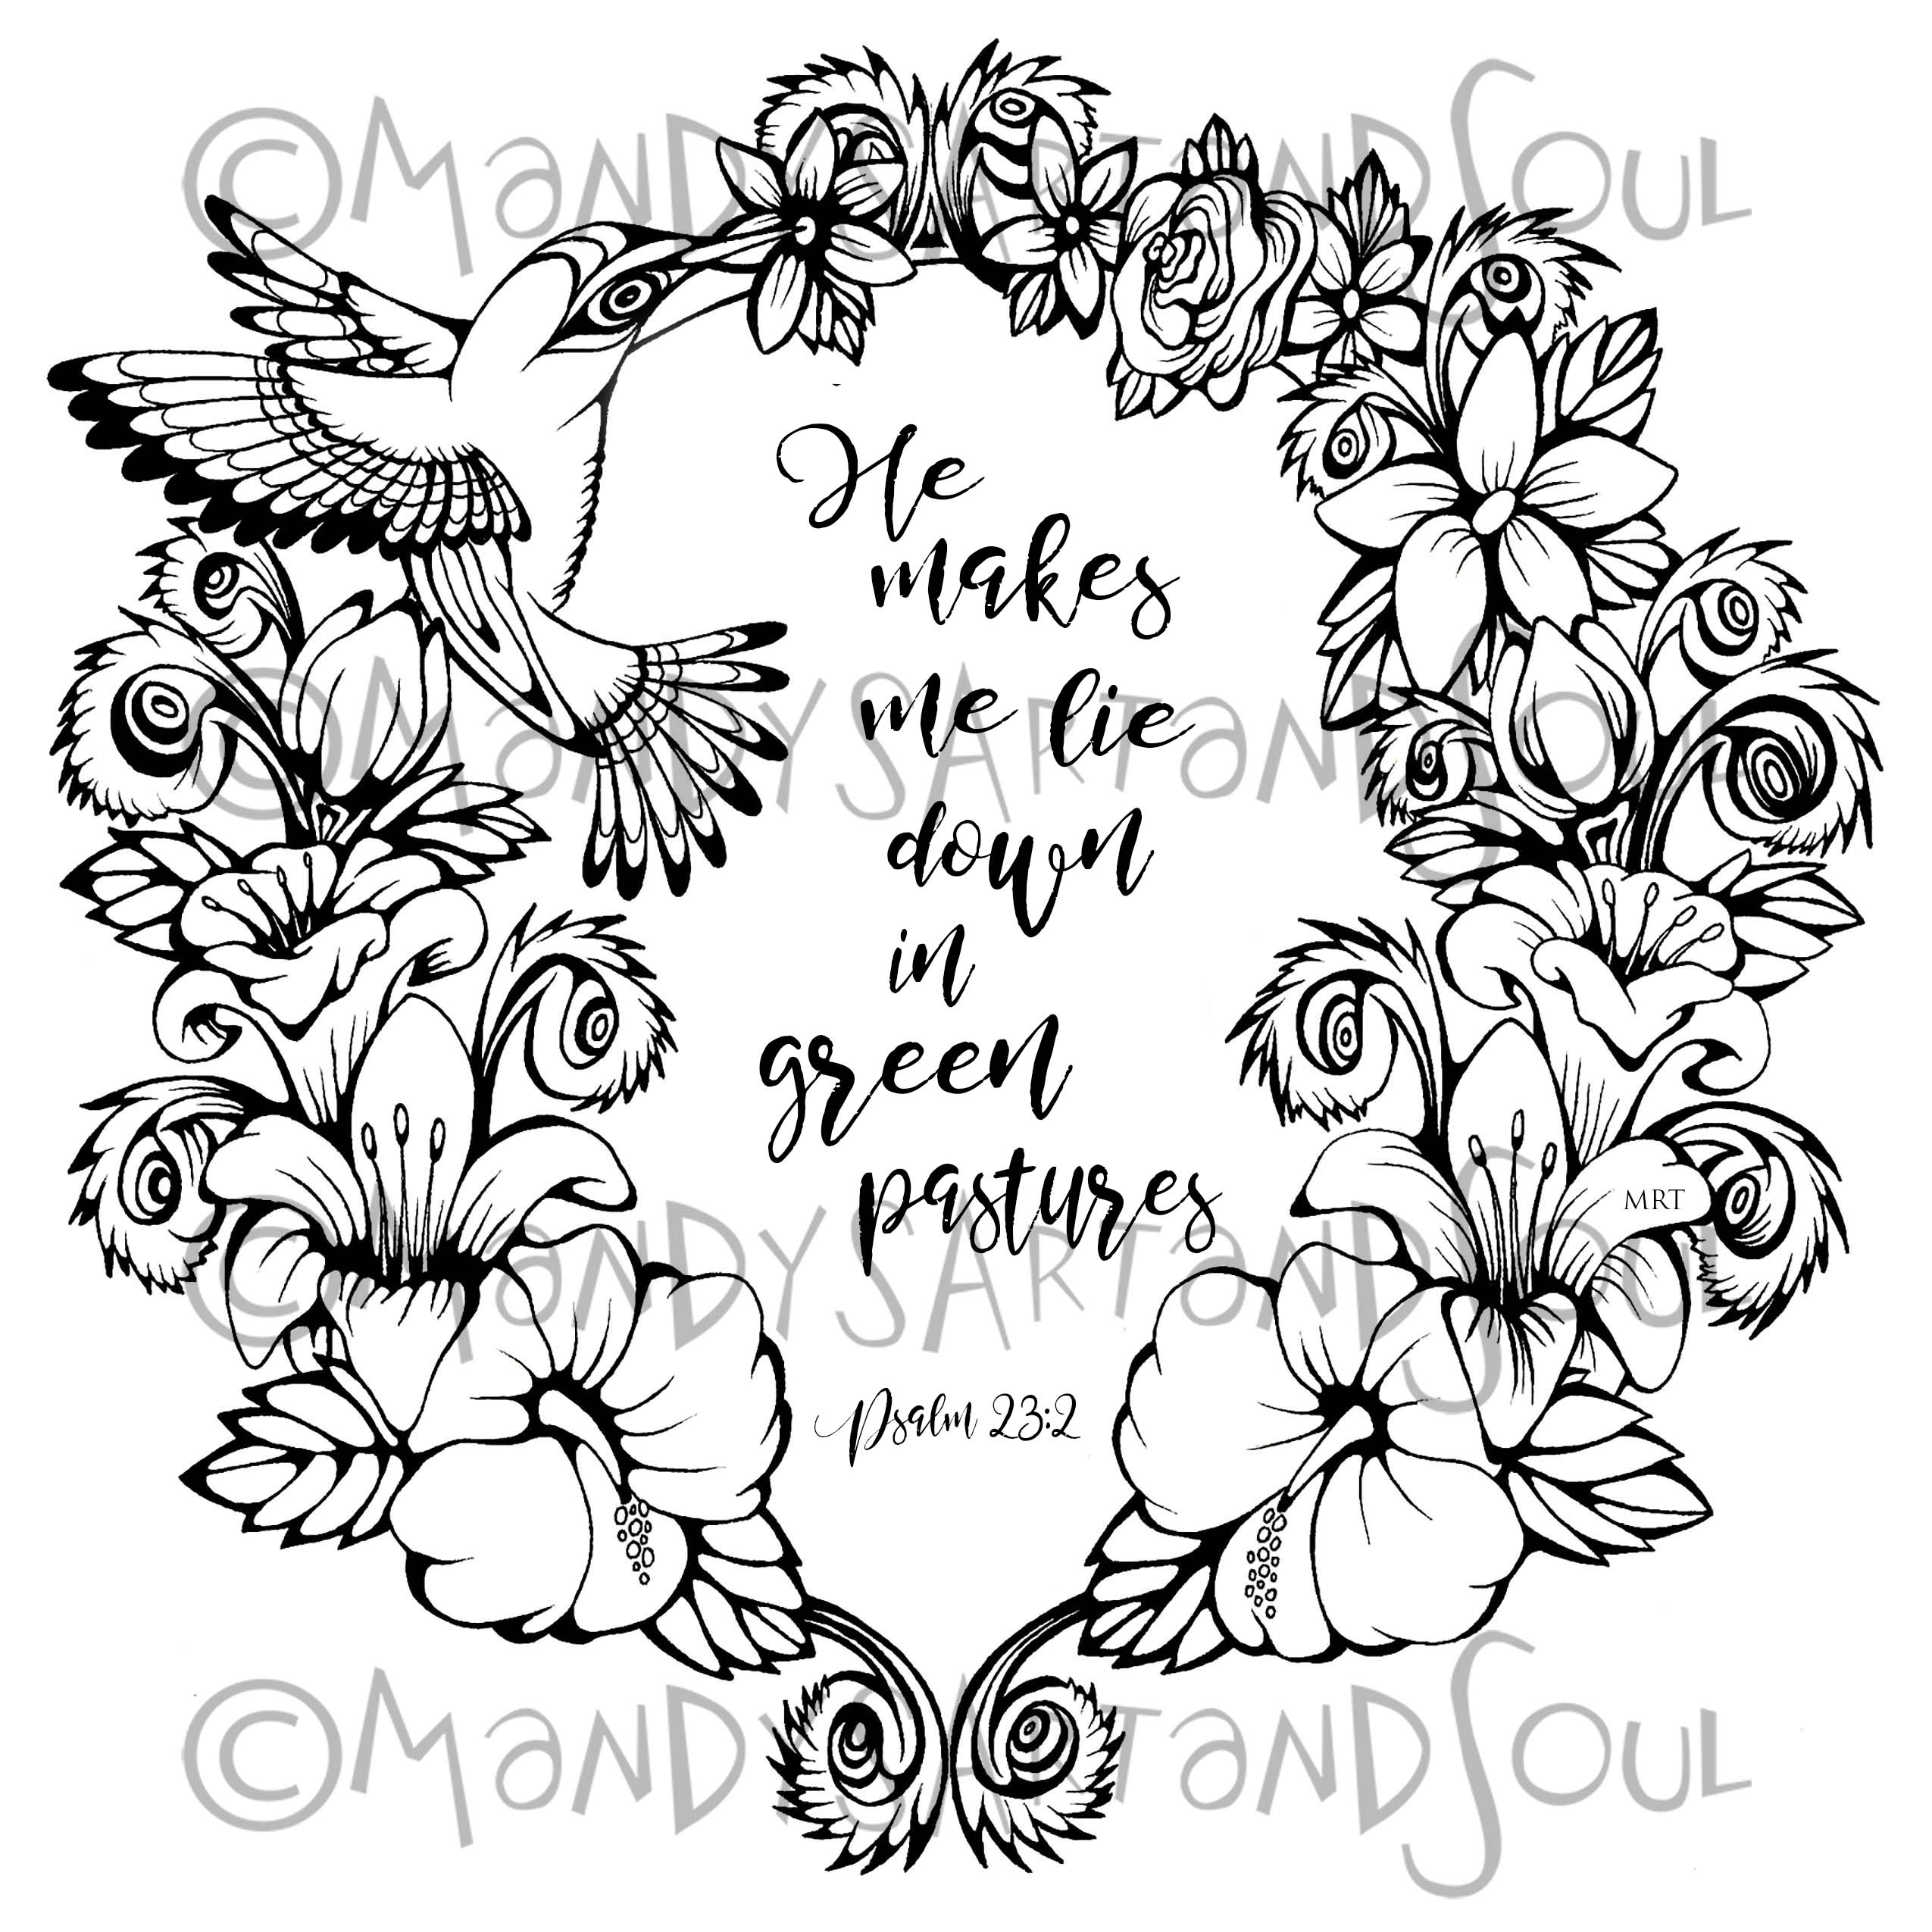 2550x2550 Largest Psalm Coloring Page Refundable Page